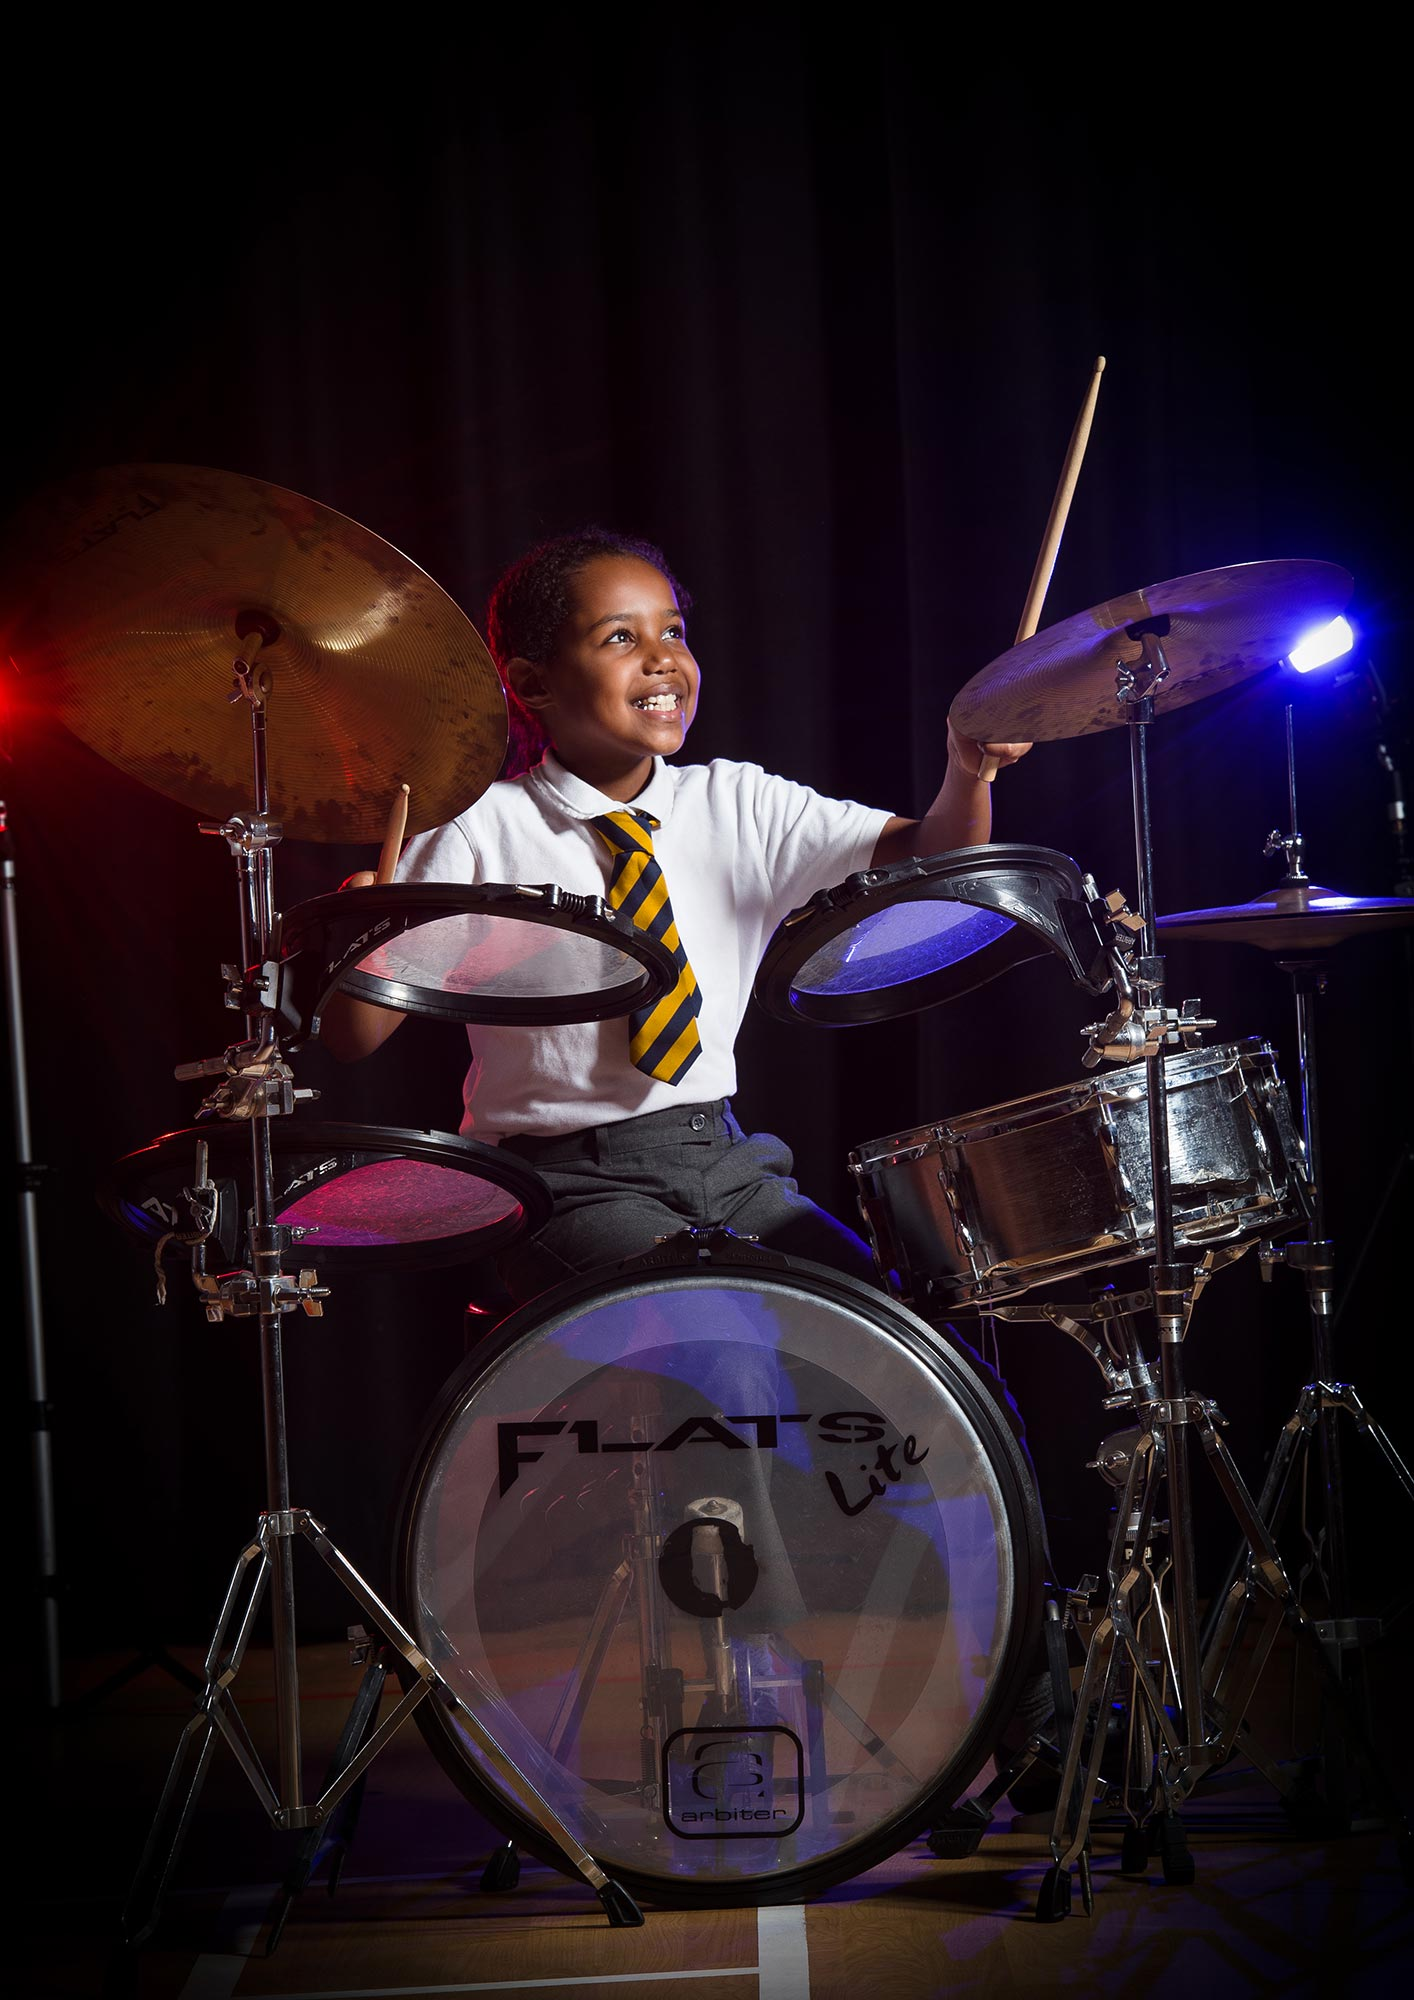 Girl playing the drums